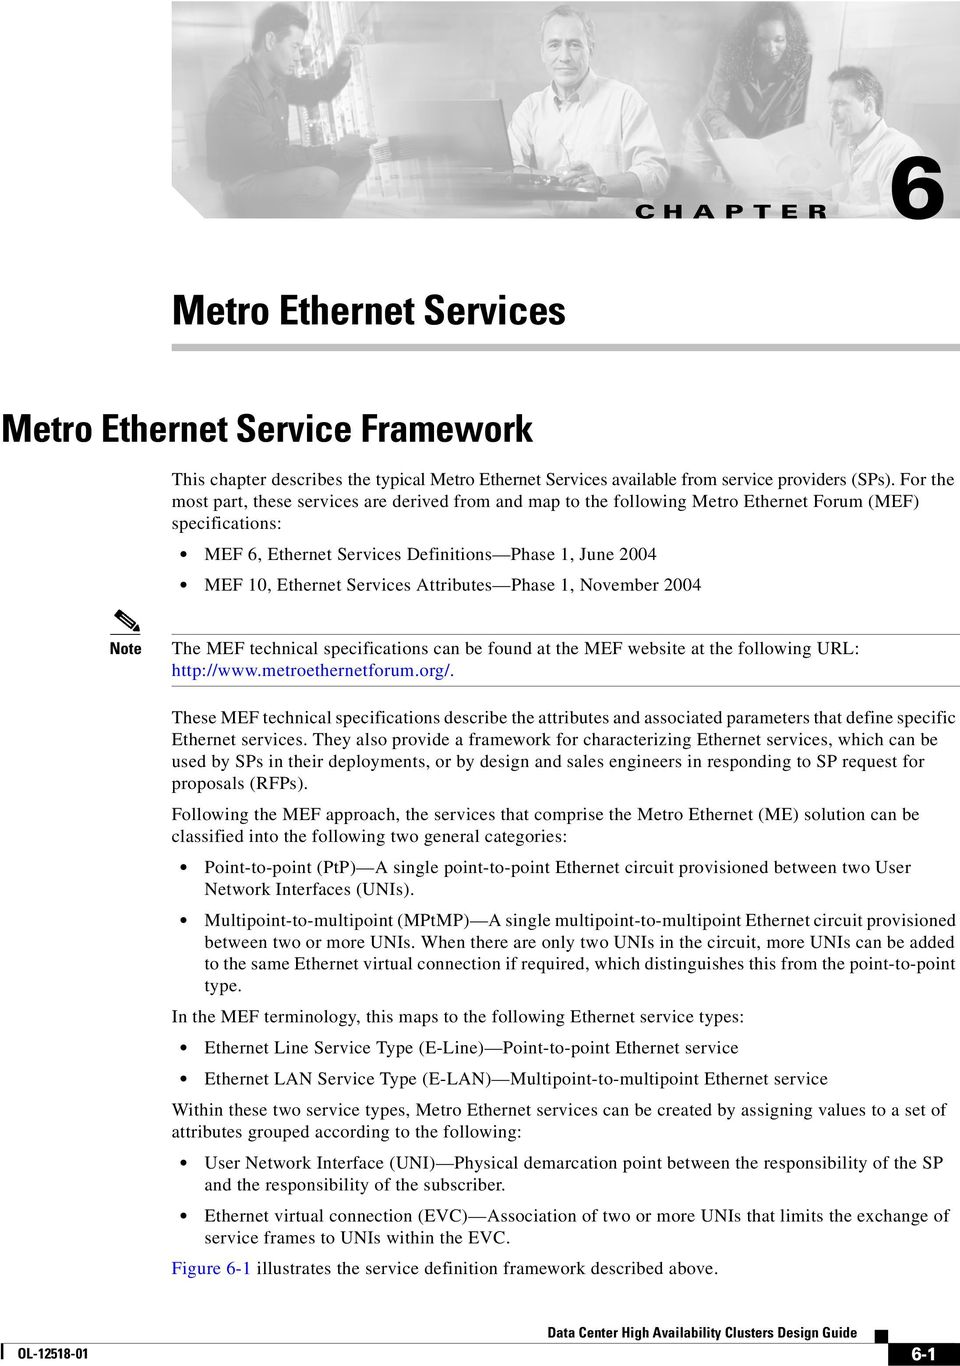 Services Attributes Phase 1, November 2004 Note The MEF technical specifications can be found at the MEF website at the following URL: http://www.metroethernetforum.org/.